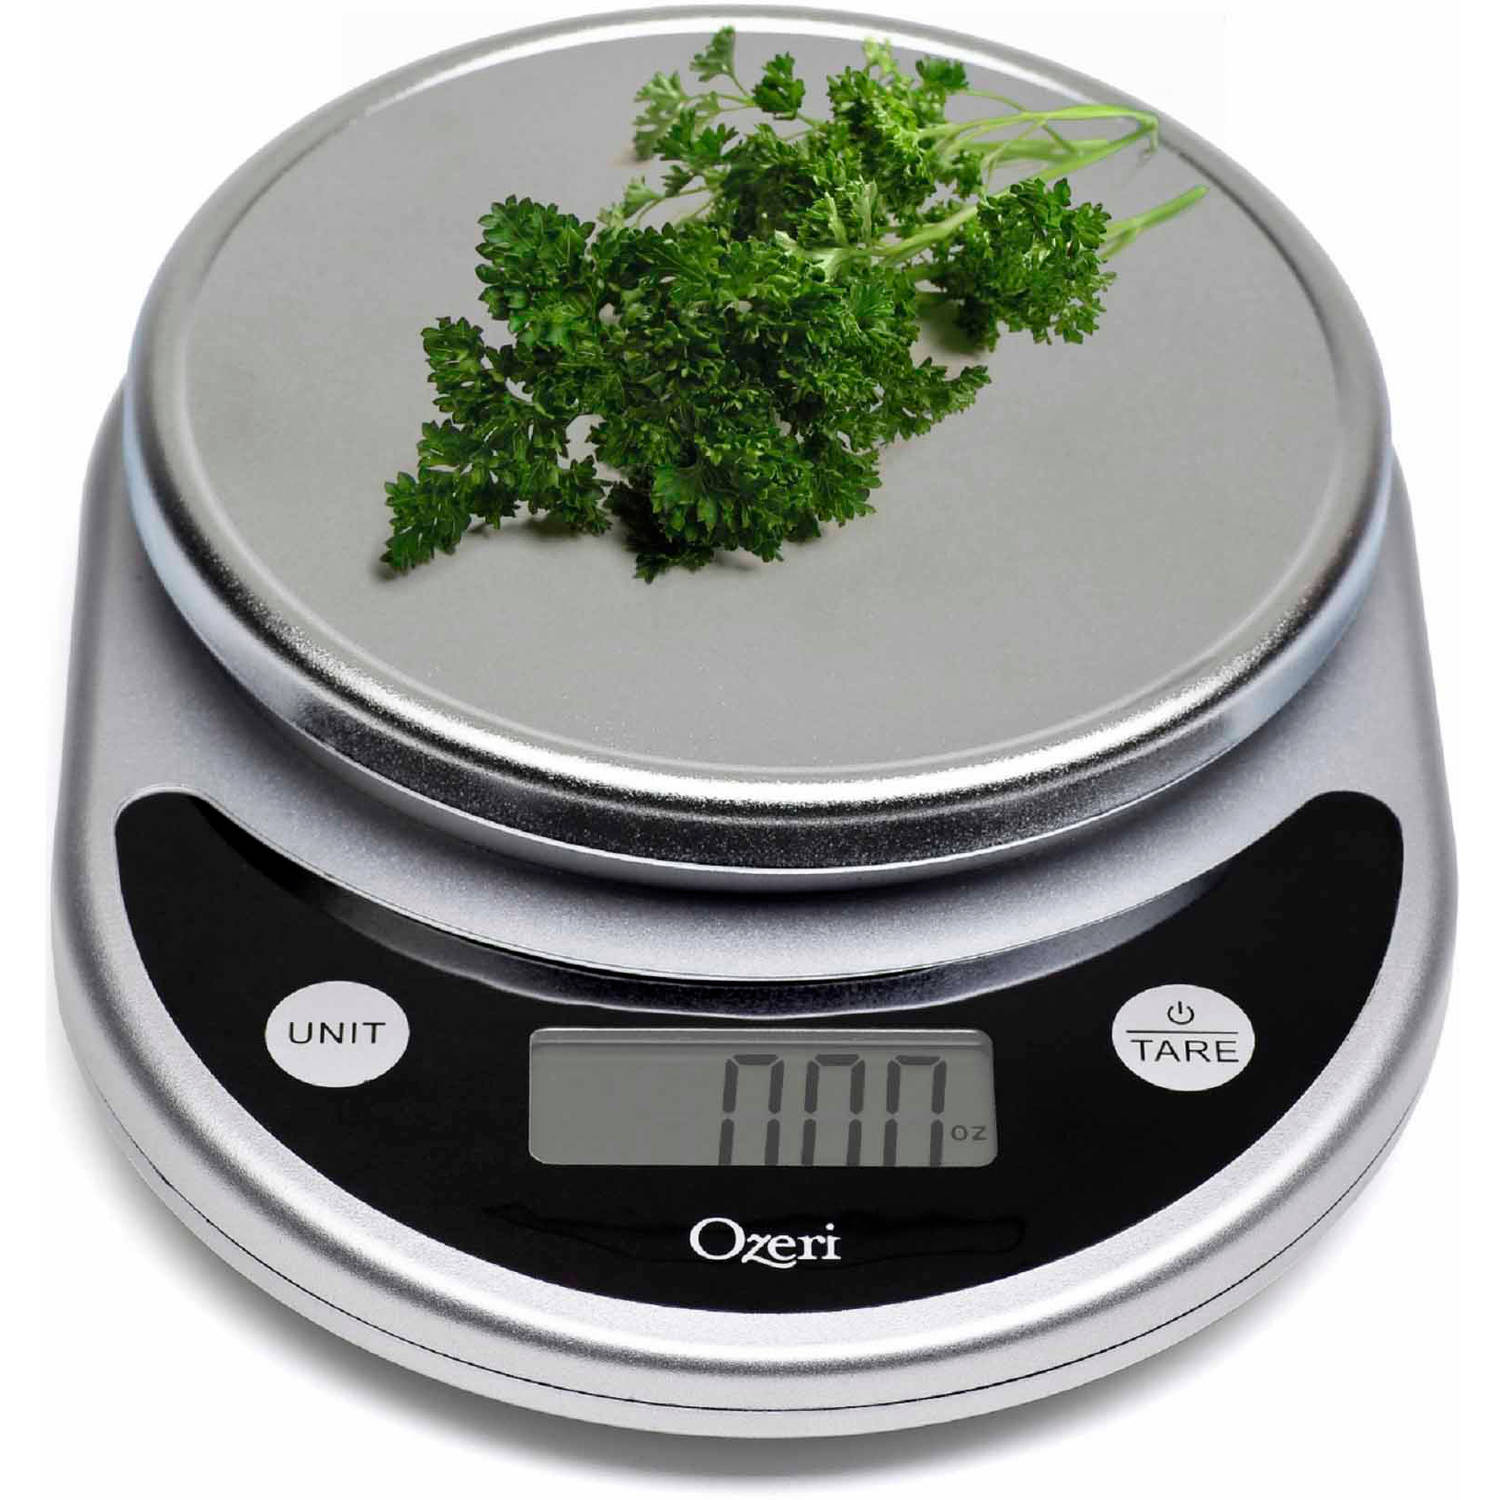 Kitchen Weight Scale | My Weigh 7000 Gram Stainless Steel Kitchen Food Scale Silver